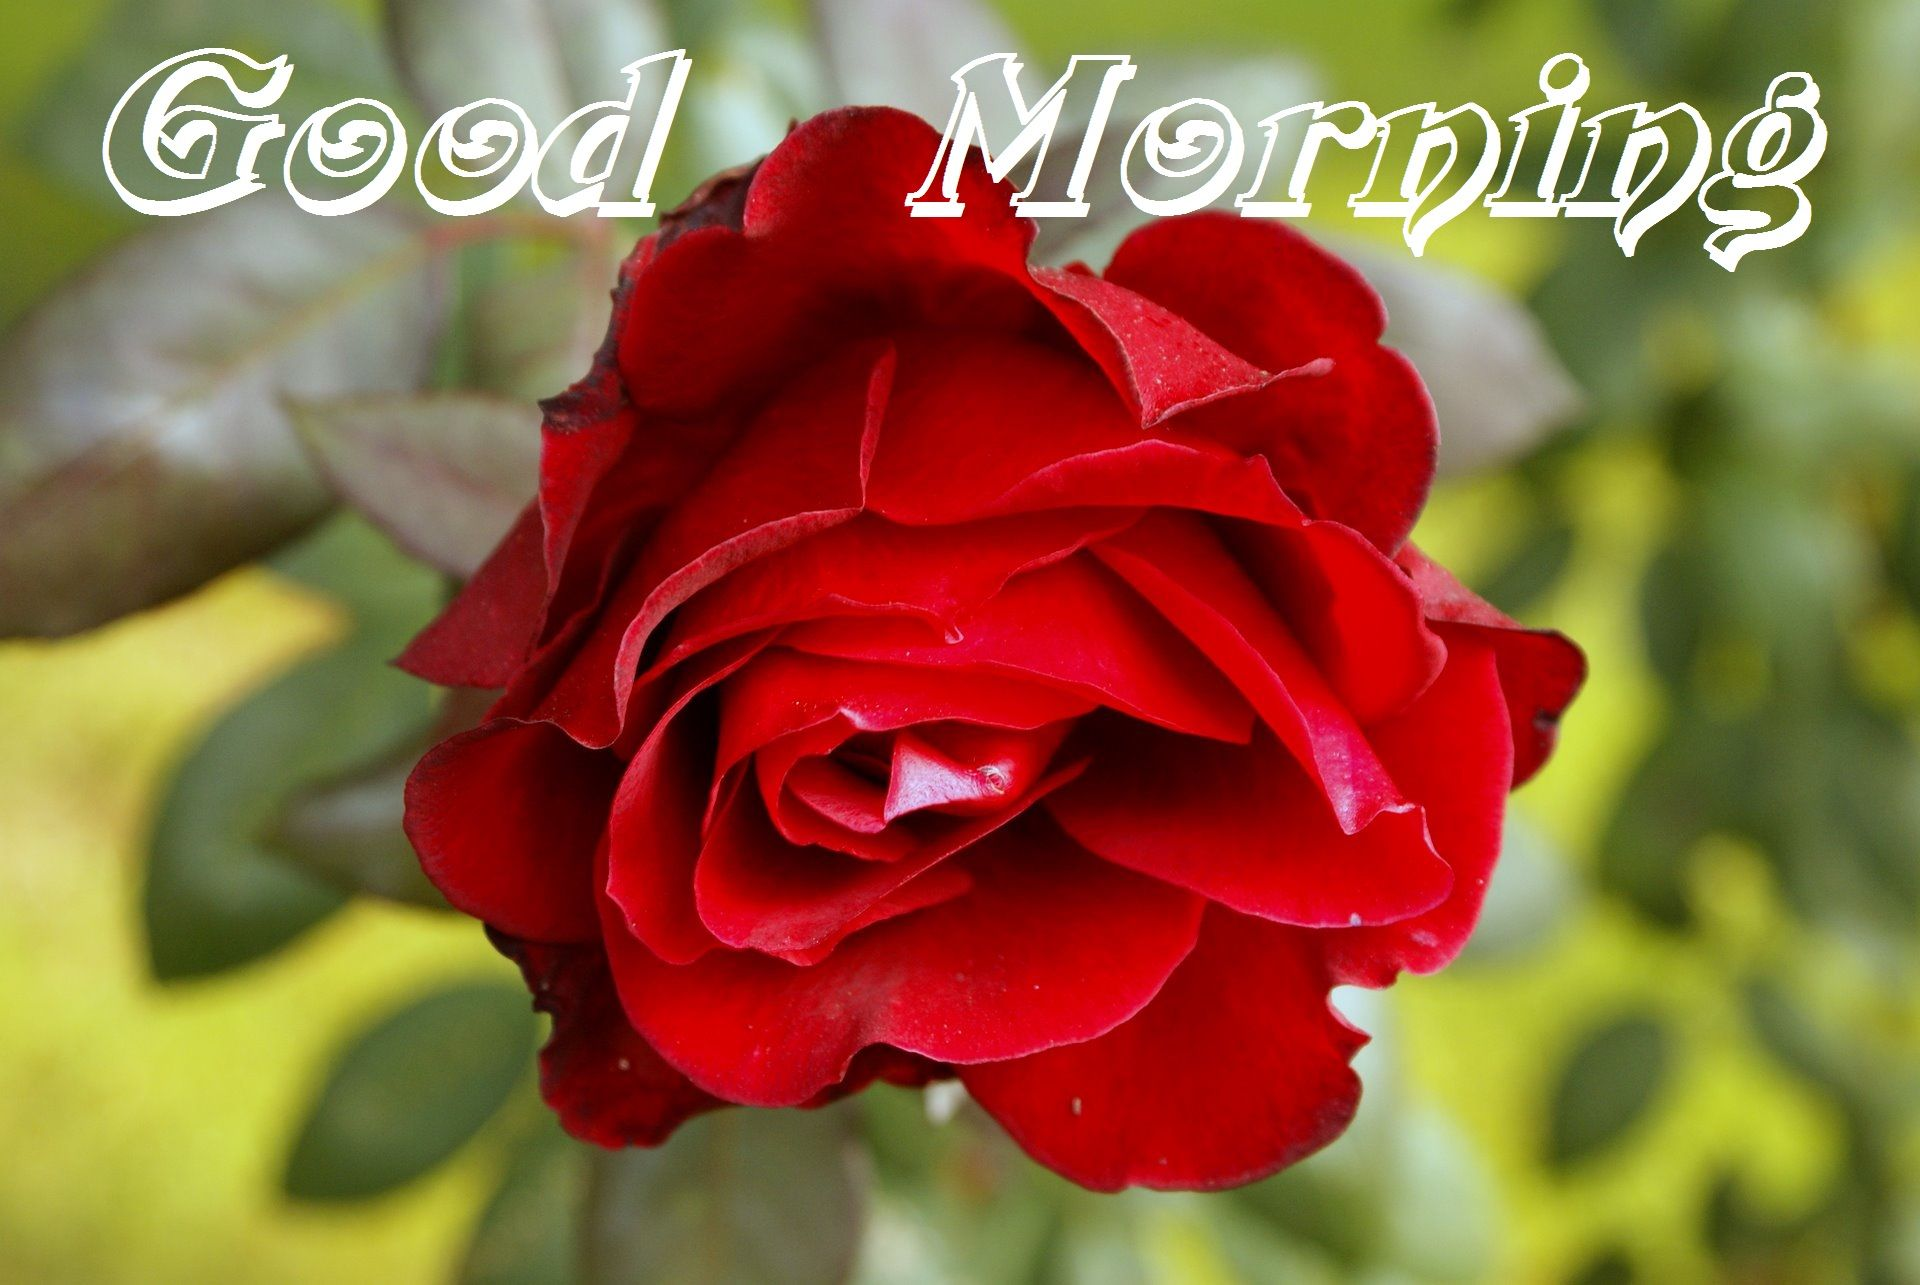 Good Morning Red Rose Cards For My Love, Friends - Best Good Morning Rose , HD Wallpaper & Backgrounds